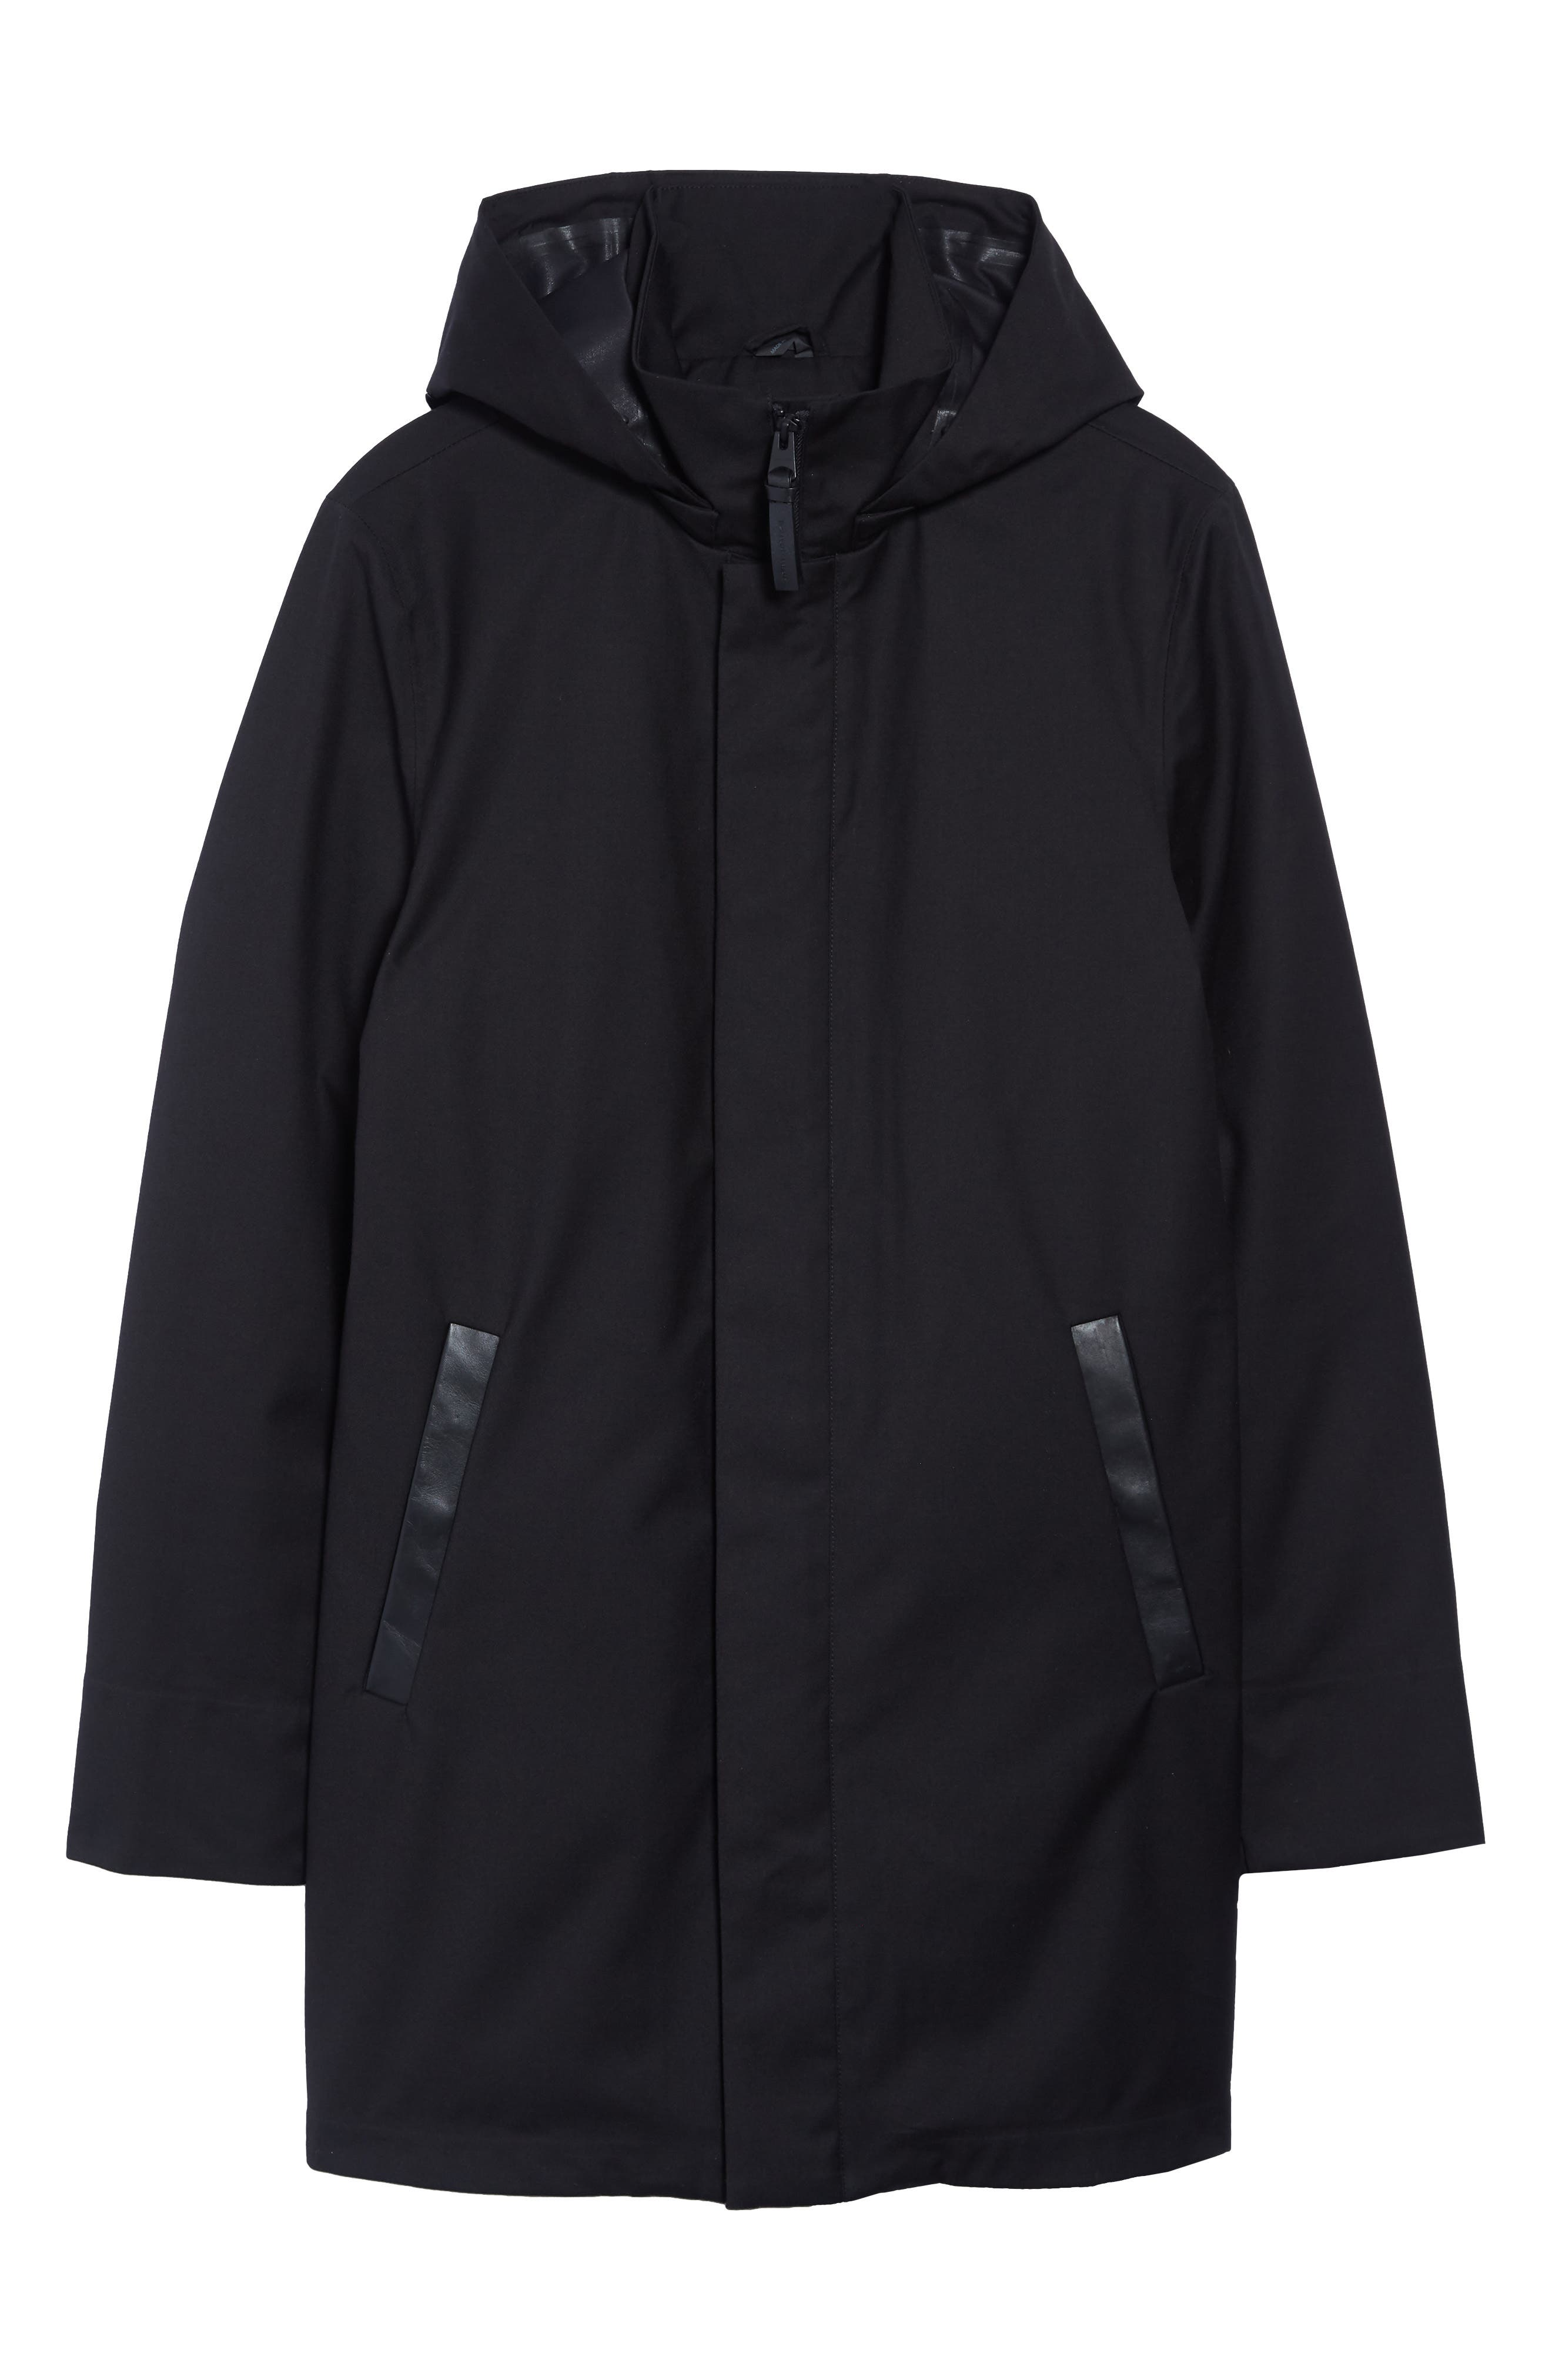 MACKAGE, Thorin-Z Jacket with Removable Down Lining, Alternate thumbnail 5, color, BLACK